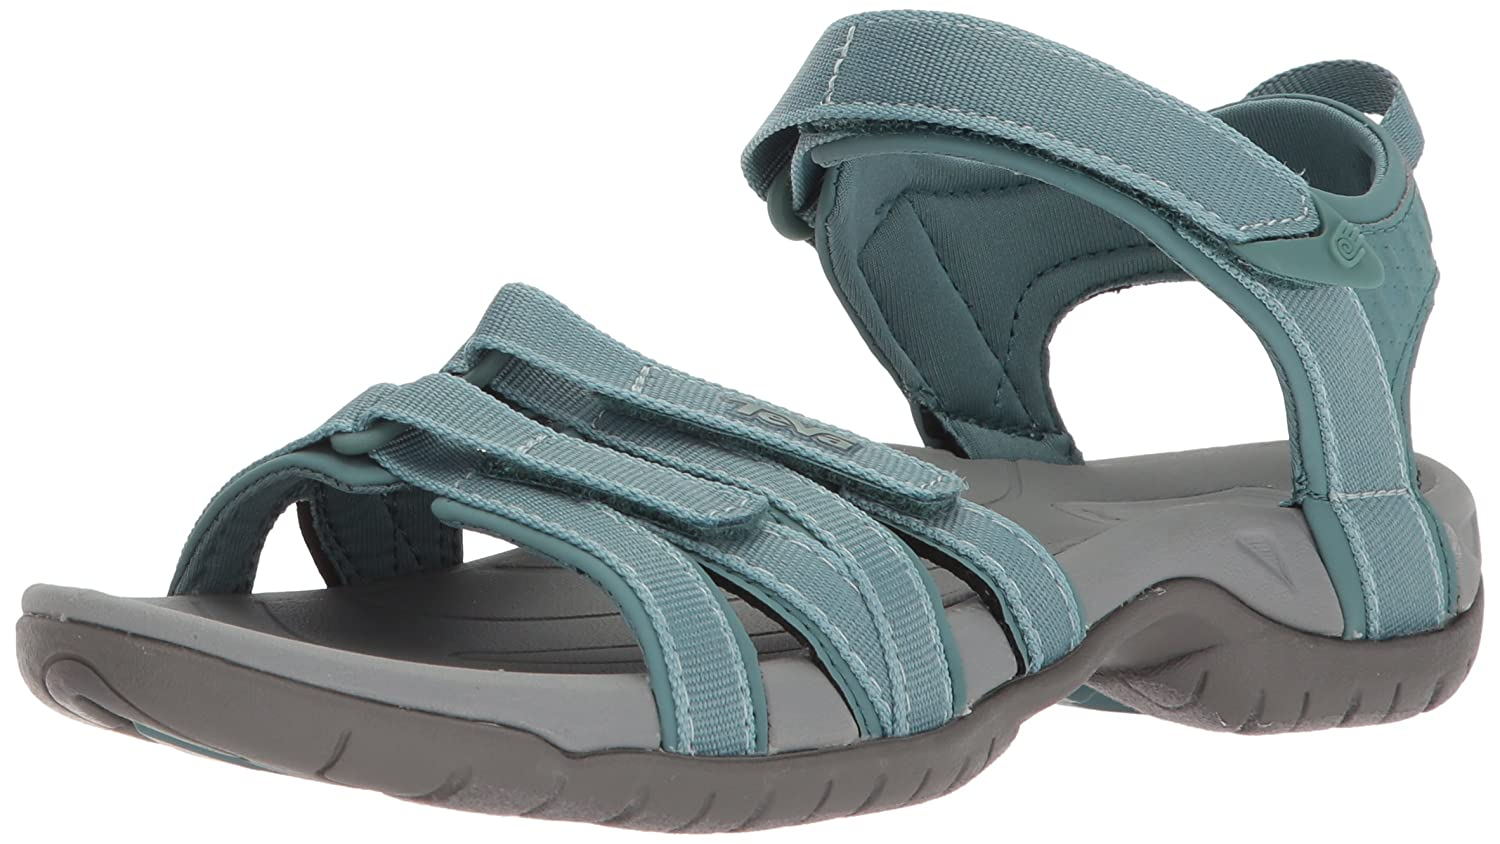 Teva Women's Tirra Athletic Sandal B07BRJBV81 7.5 D(M) US|North Atlantic